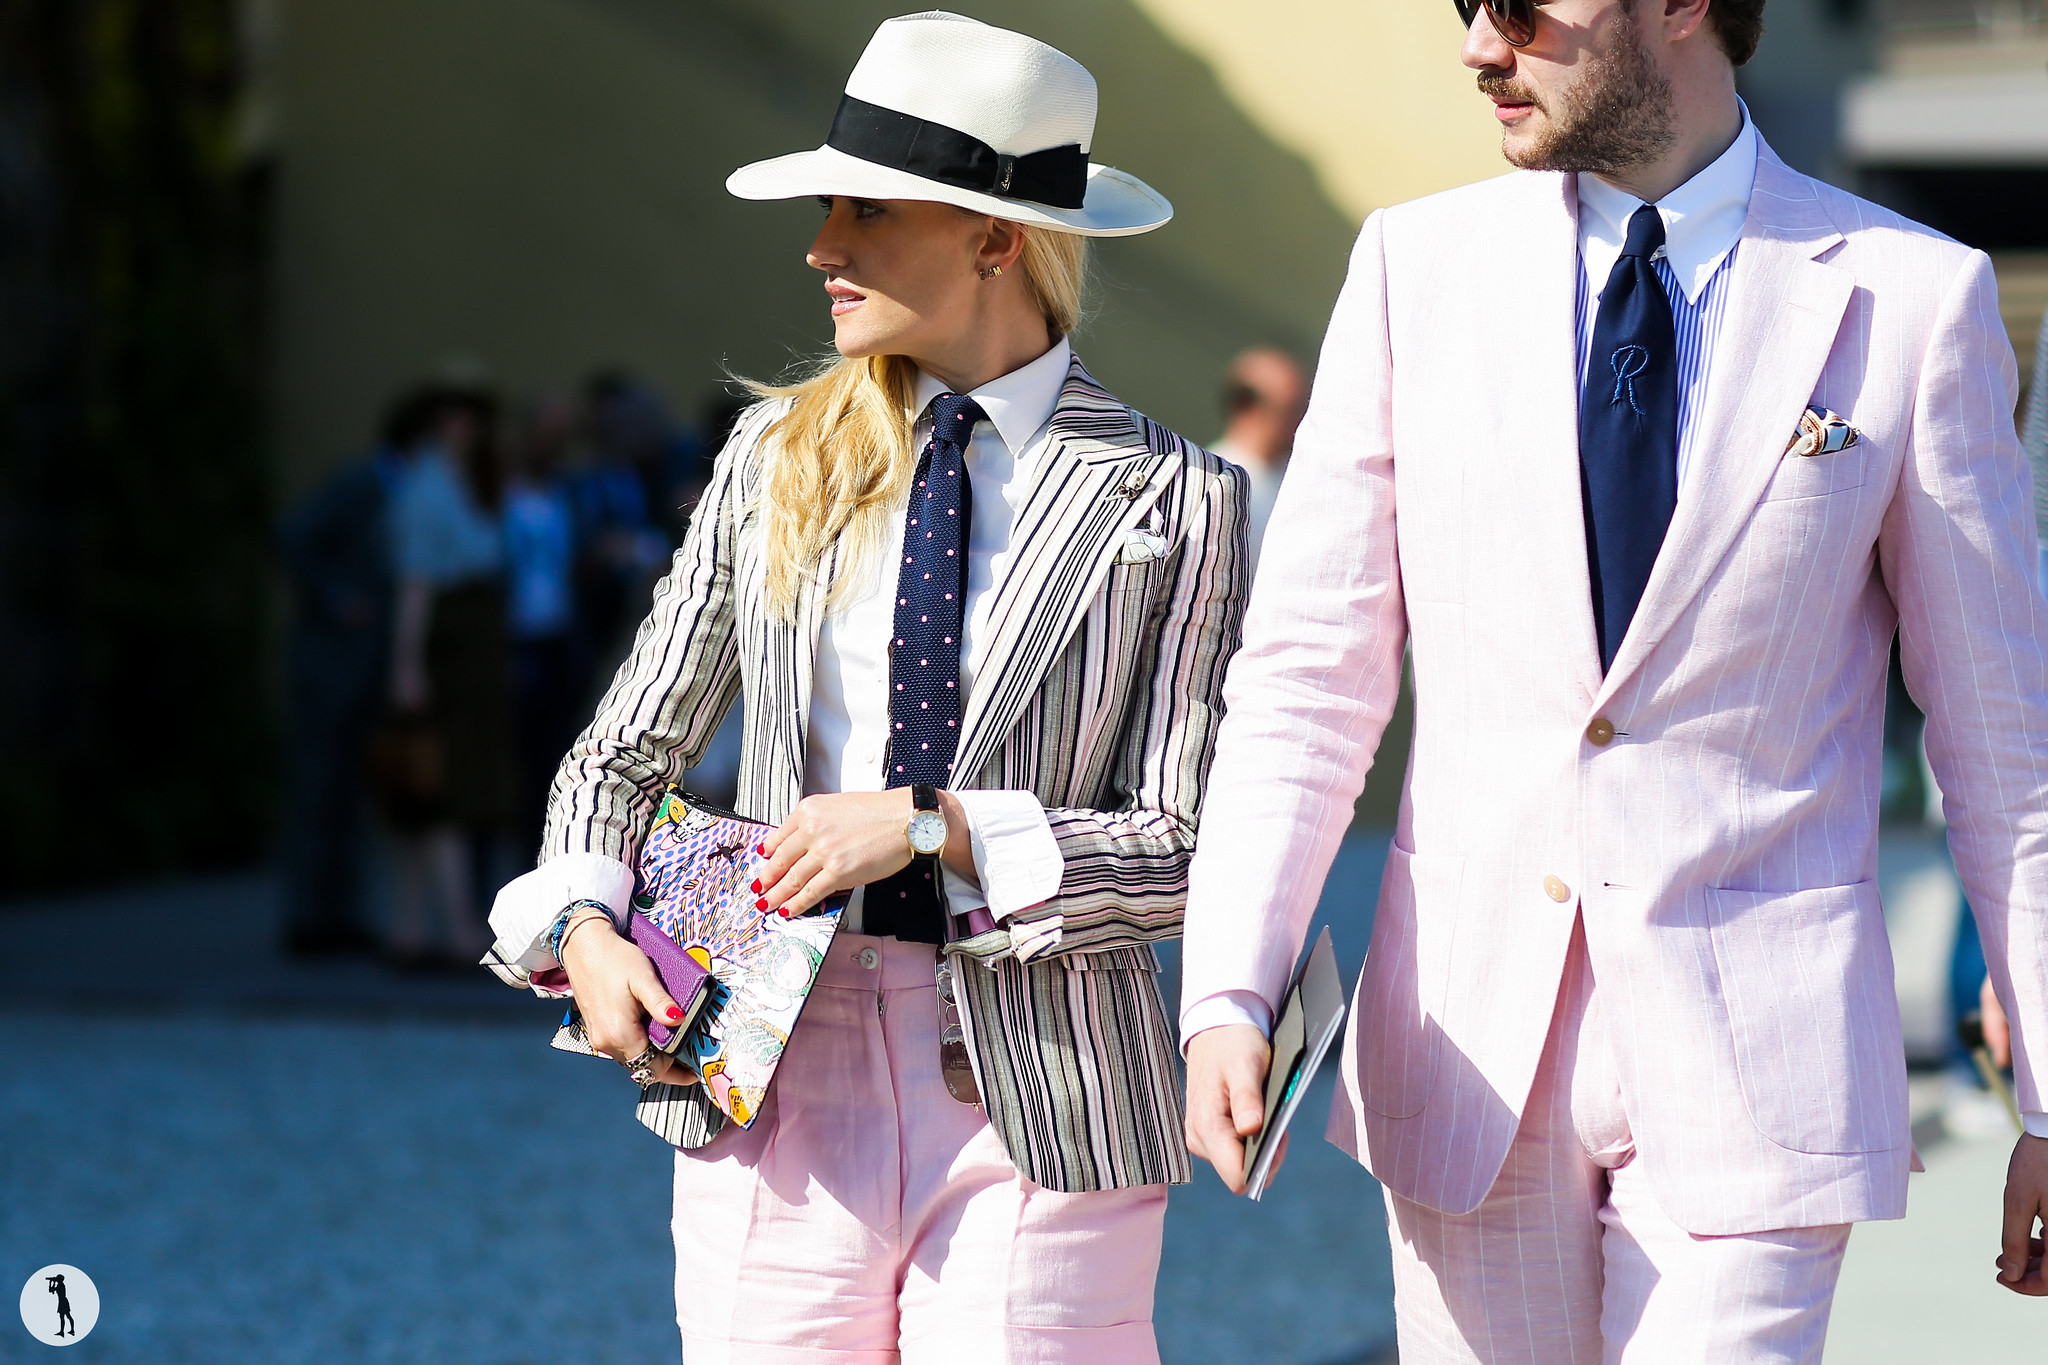 Sarah Ann Murray at Pitti Uomo 88